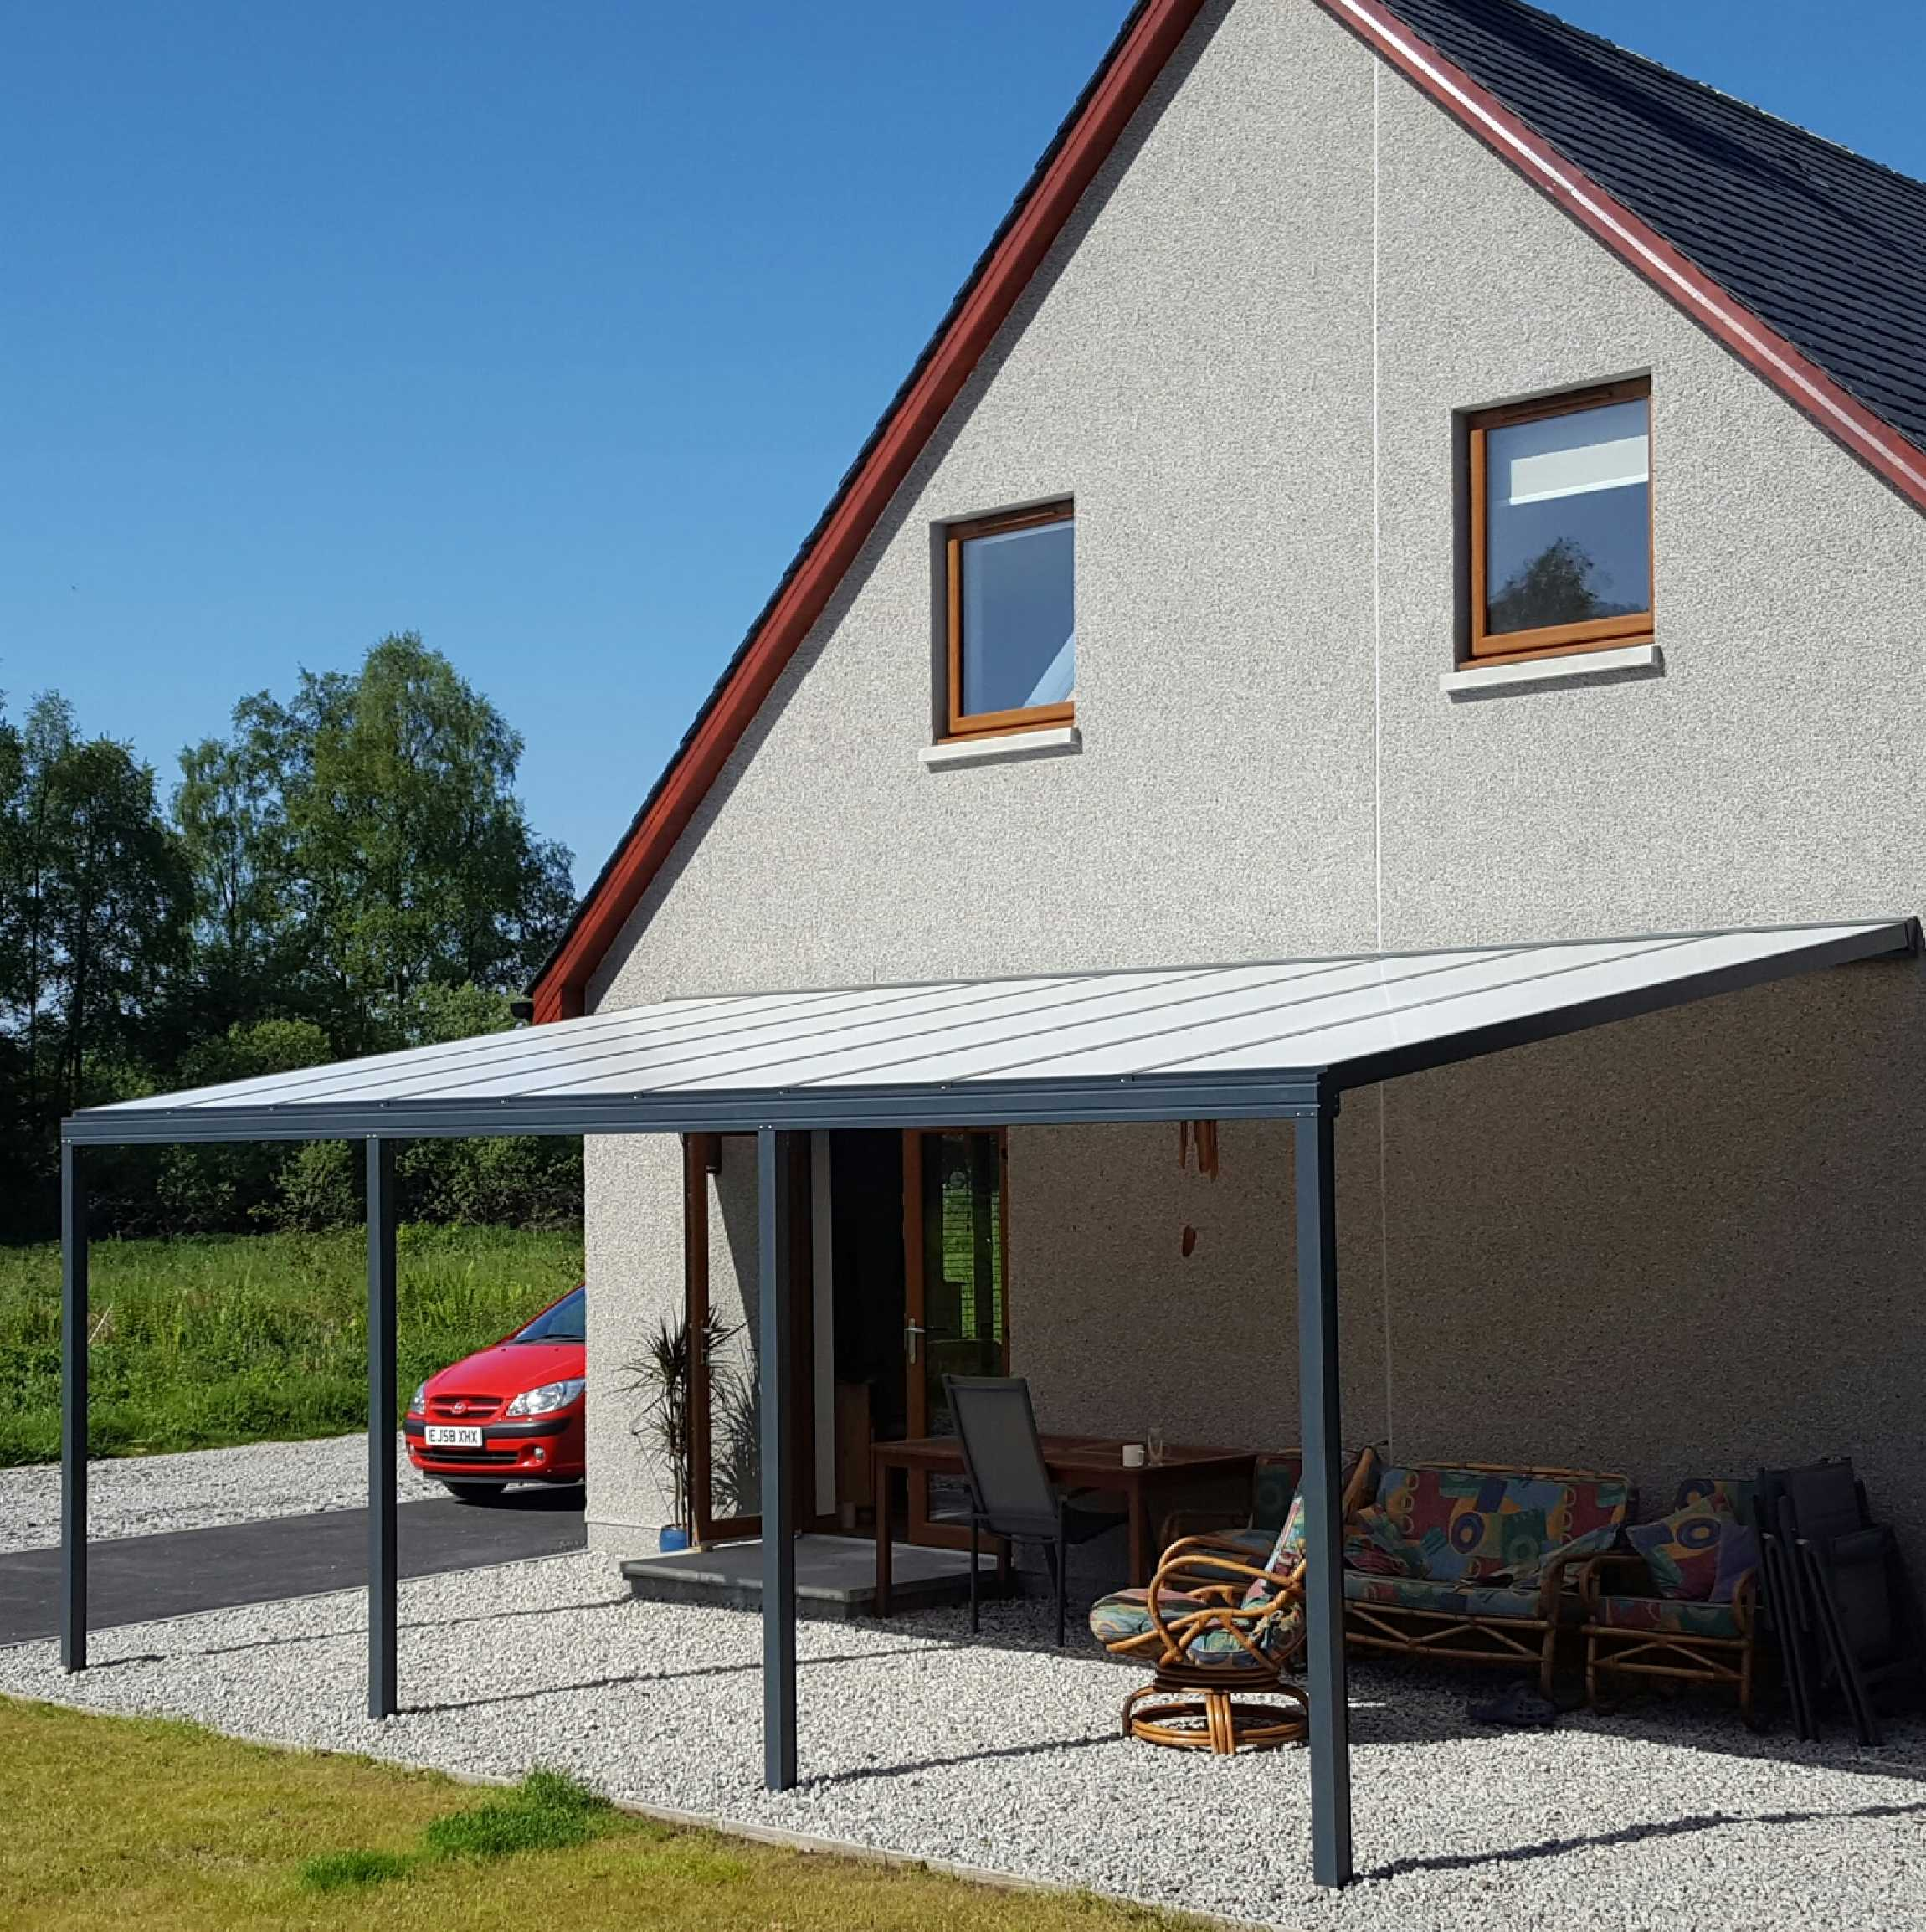 Great selection of Omega Smart Lean-To Canopy, Anthracite Grey, 16mm Polycarbonate Glazing - 8.0m (W) x 4.5m (P), (4) Supporting Posts